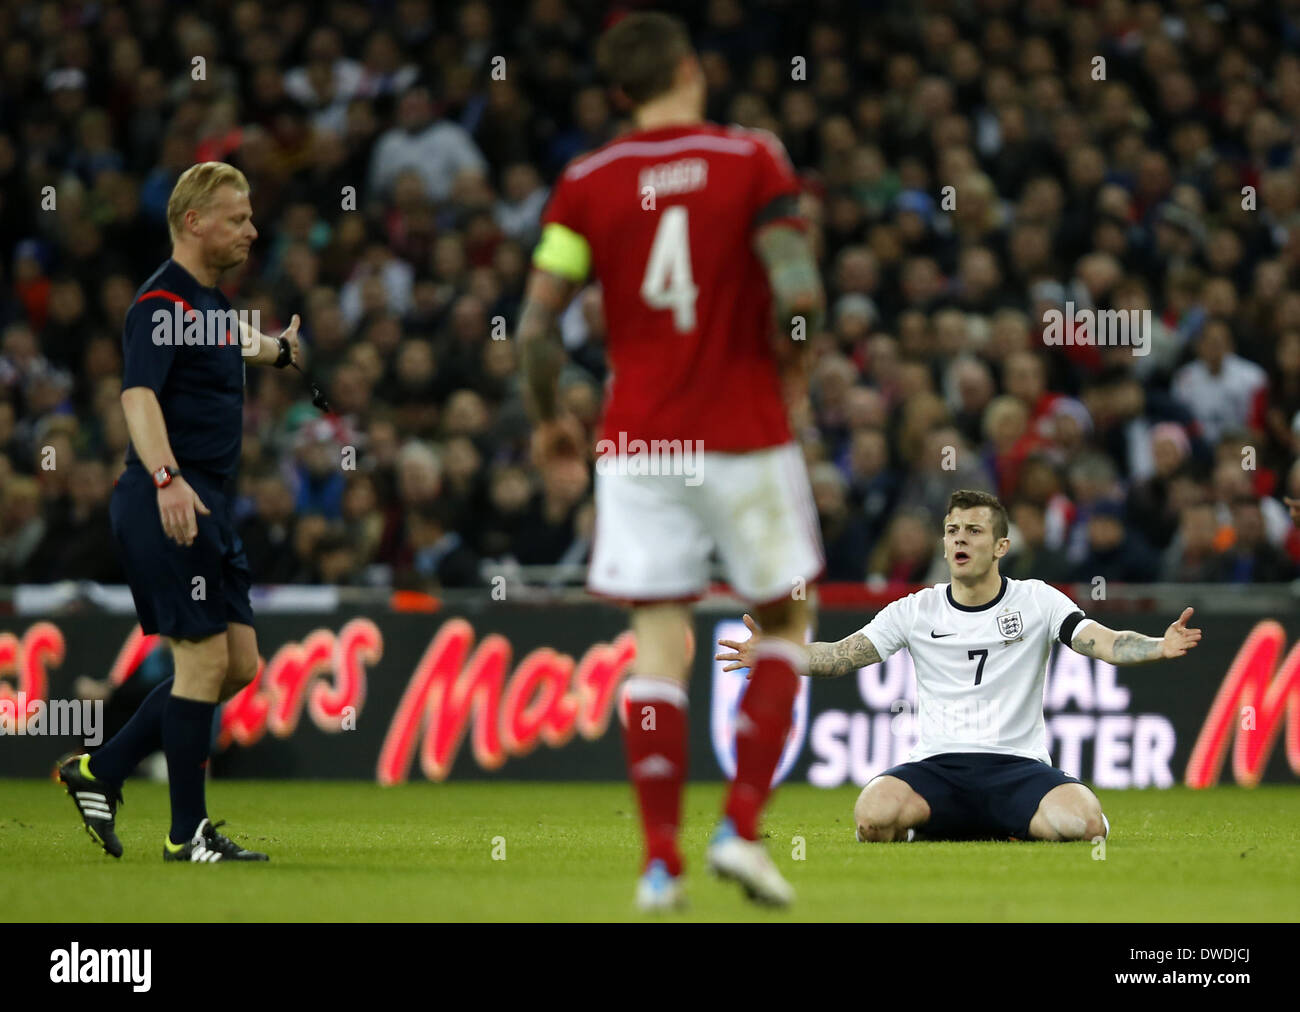 London, UK. 5th Mar, 2014. Jack Wilshere of England reacts during an international friendly soccer match between England and Denmark at Wembley Stadium in London, Britain on March 5, 2014. England won 1-0. Credit:  Wang Lili/Xinhua/Alamy Live News - Stock Image